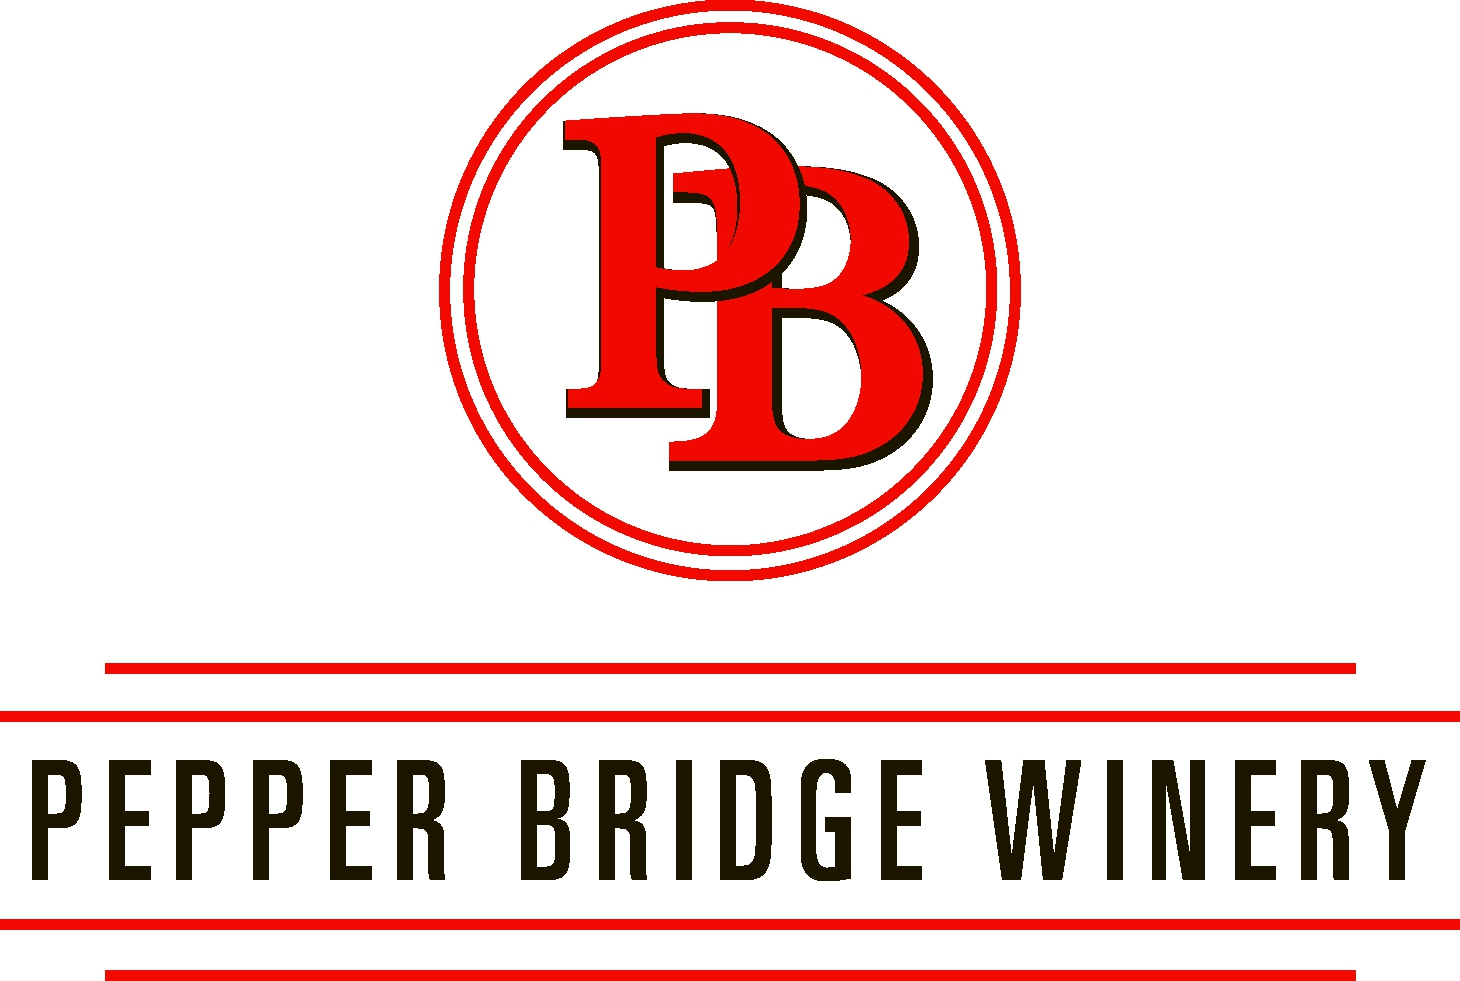 Pepperbridge Logosquare